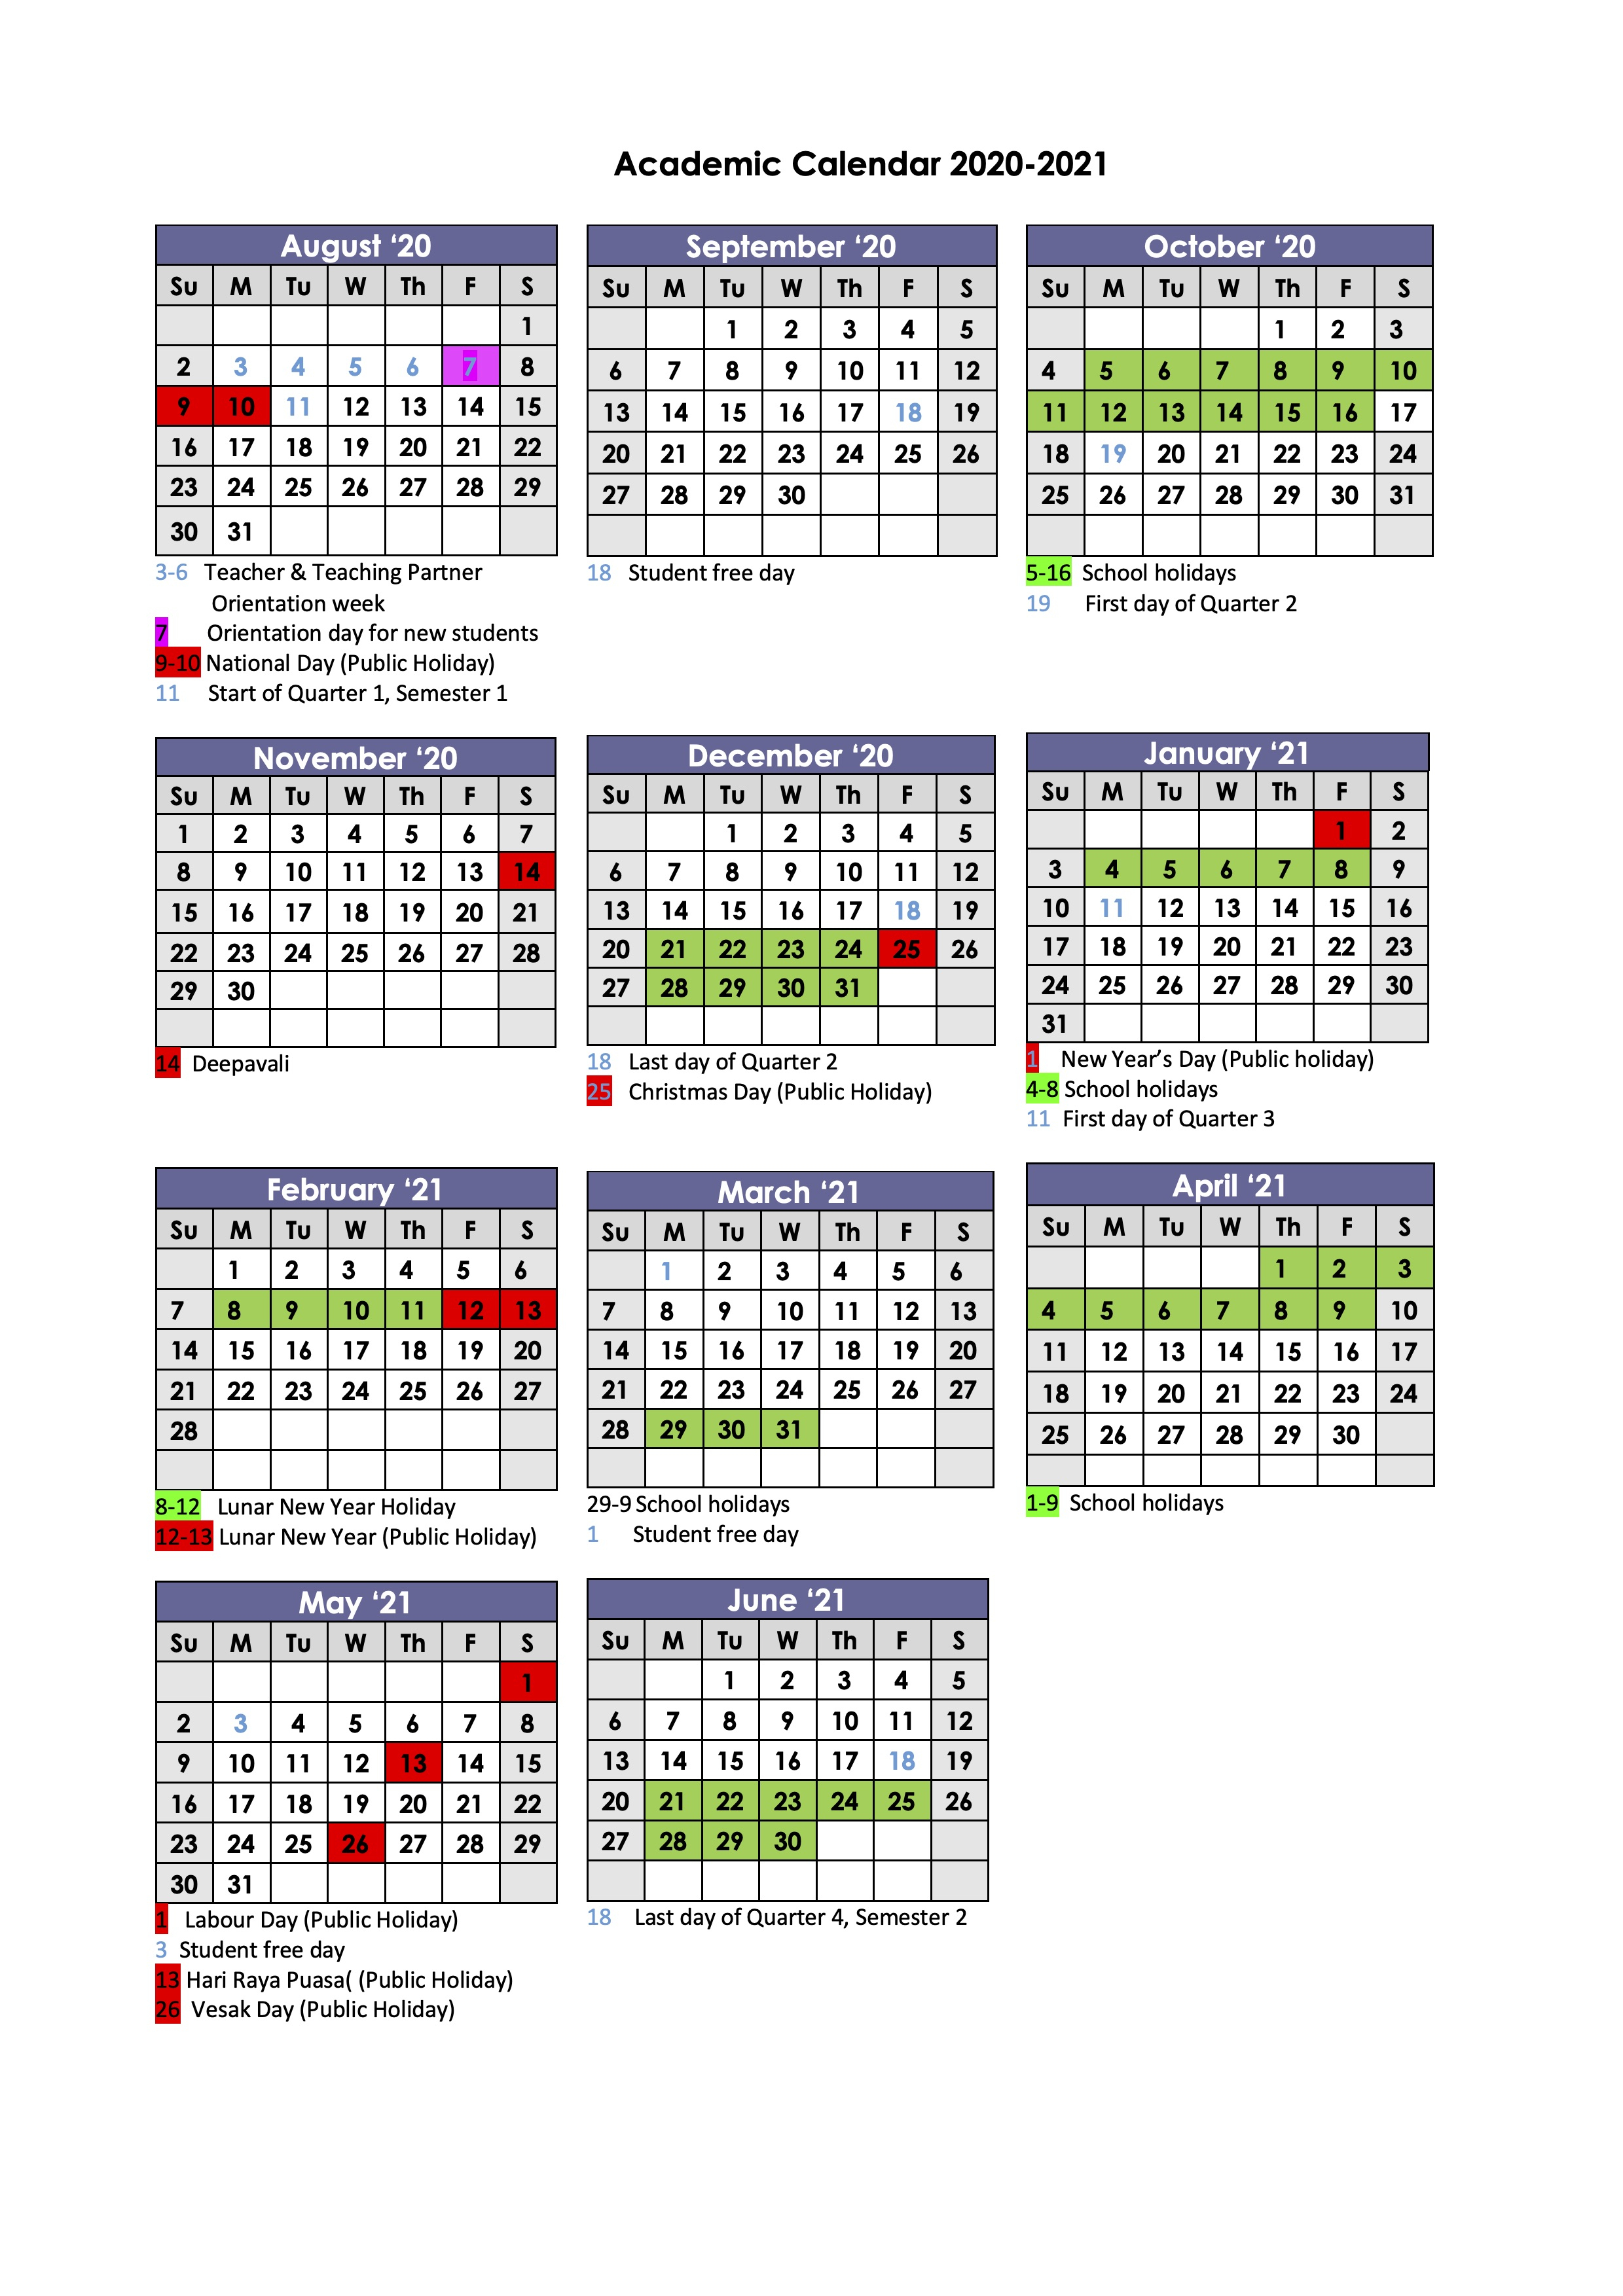 Academic Calendar | Gems World Academy (Singapore) in Gems World Academy Academic Calendar